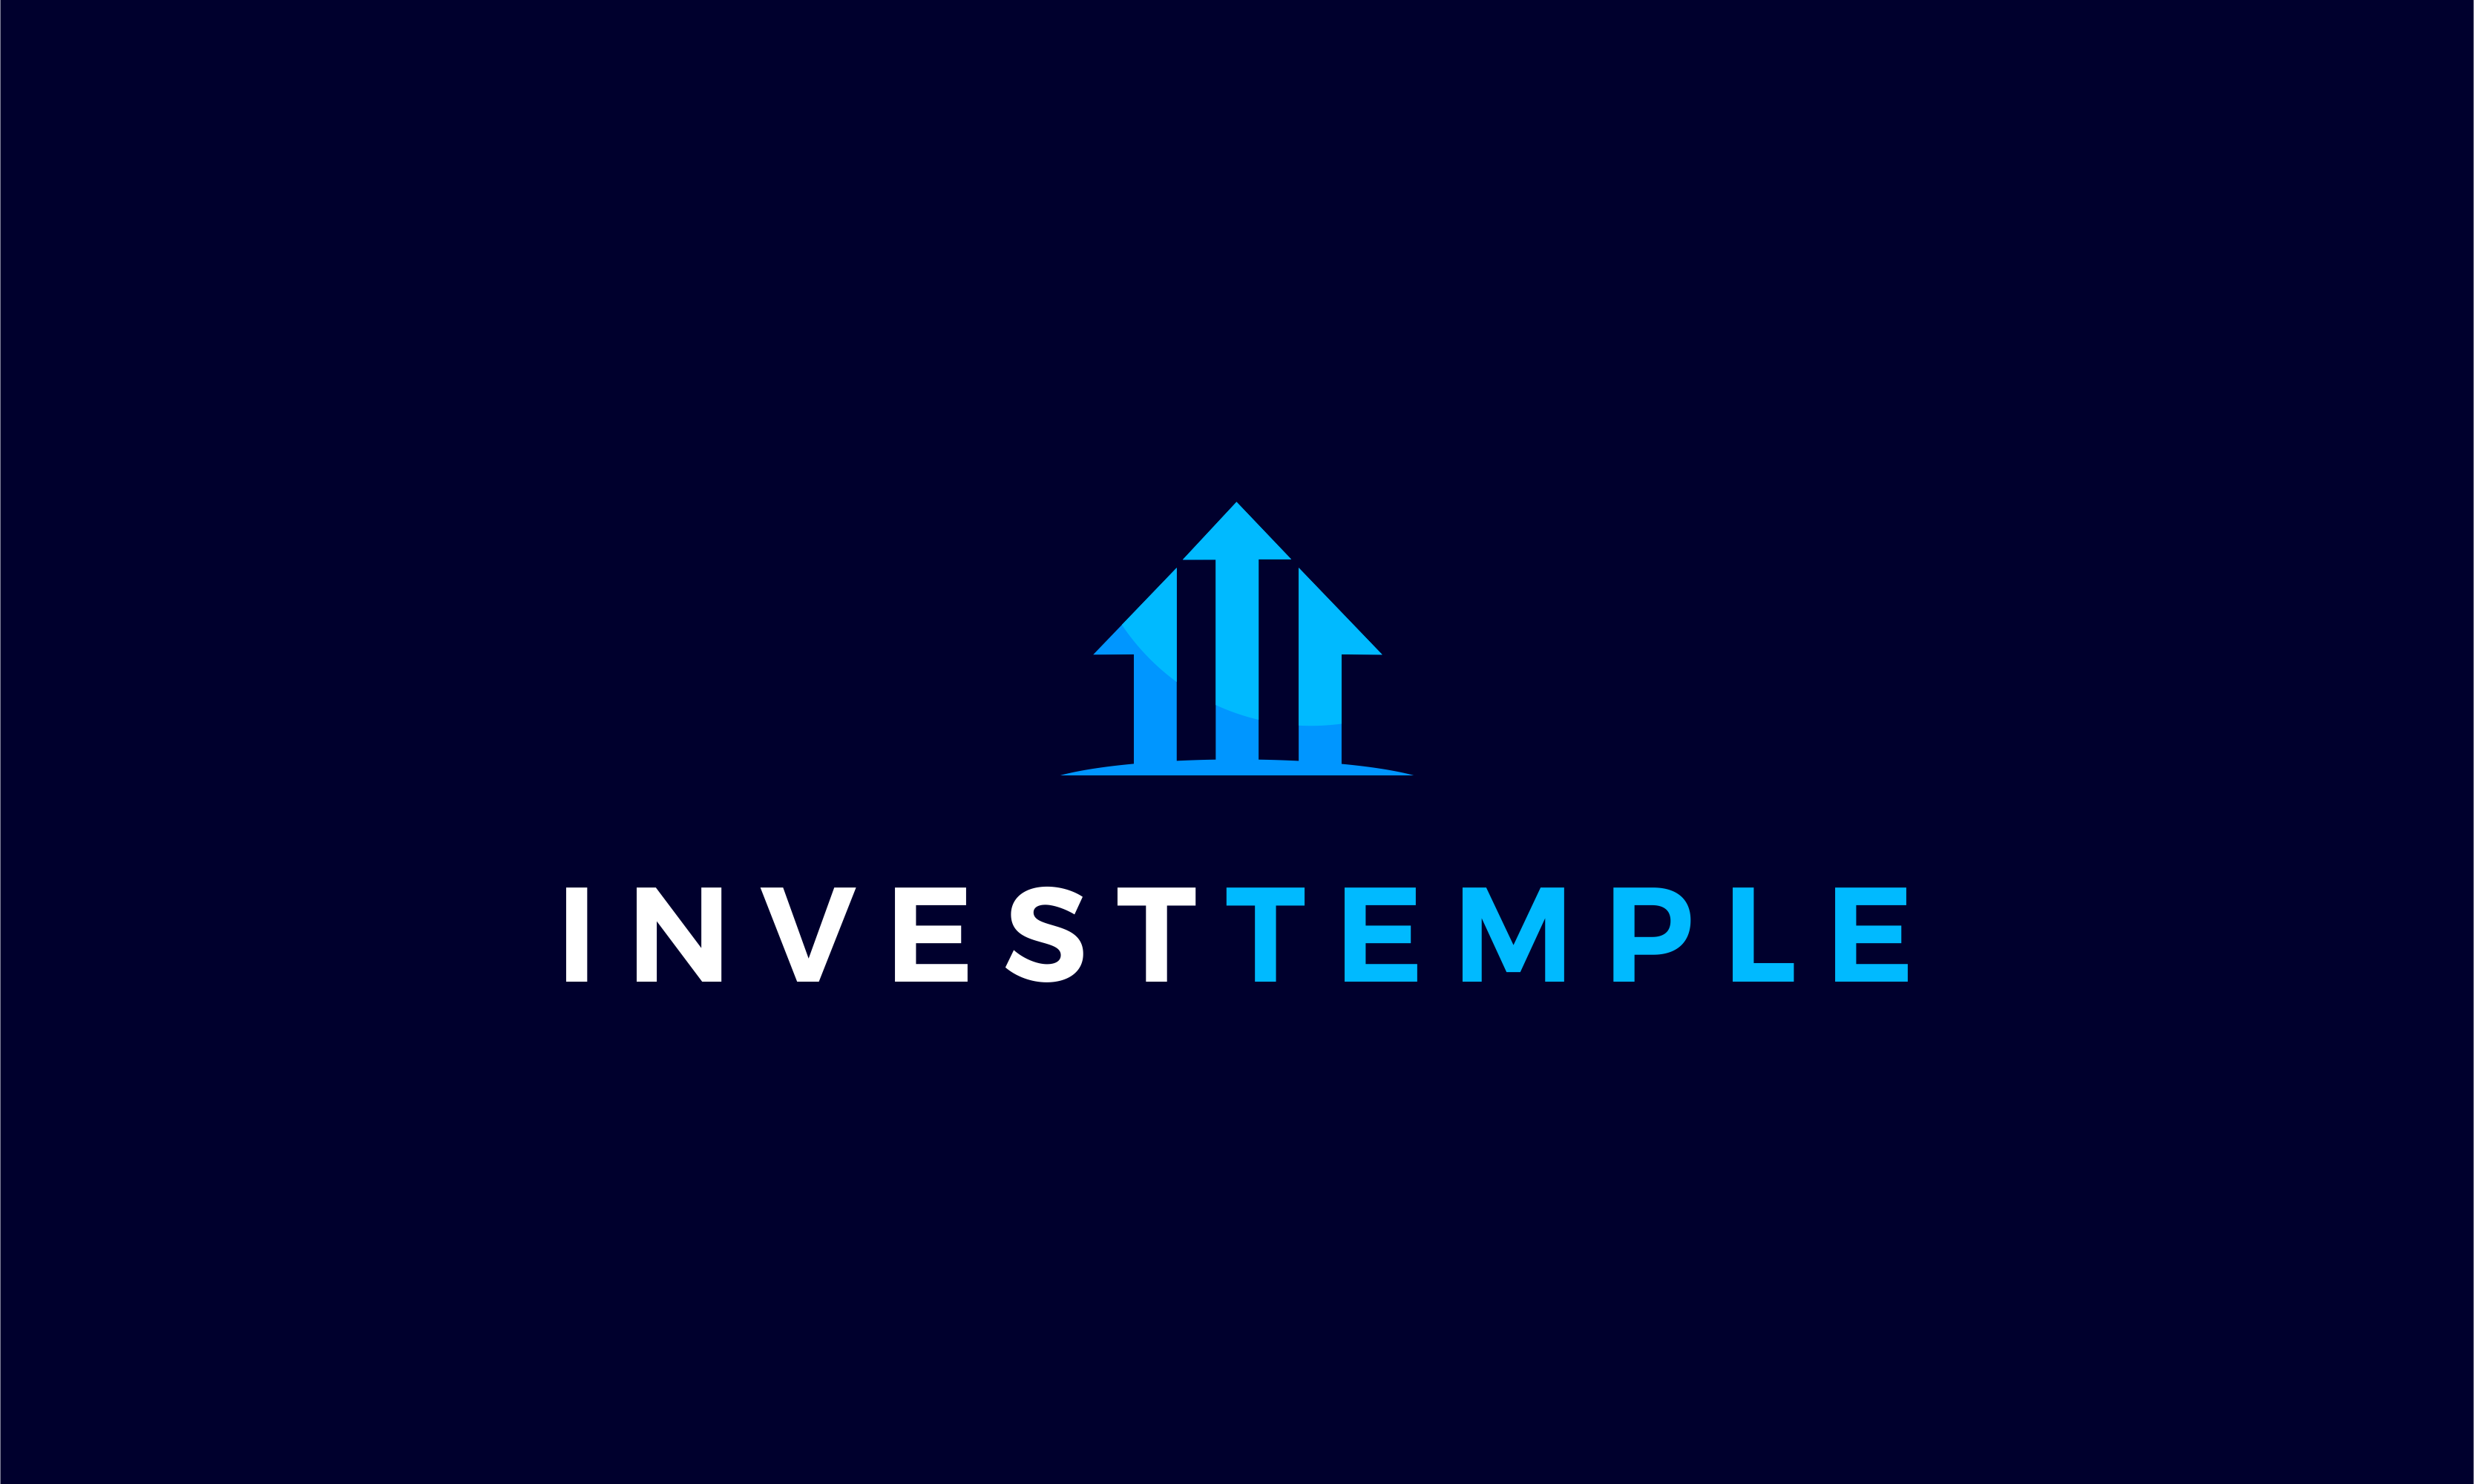 InvestTemple logo